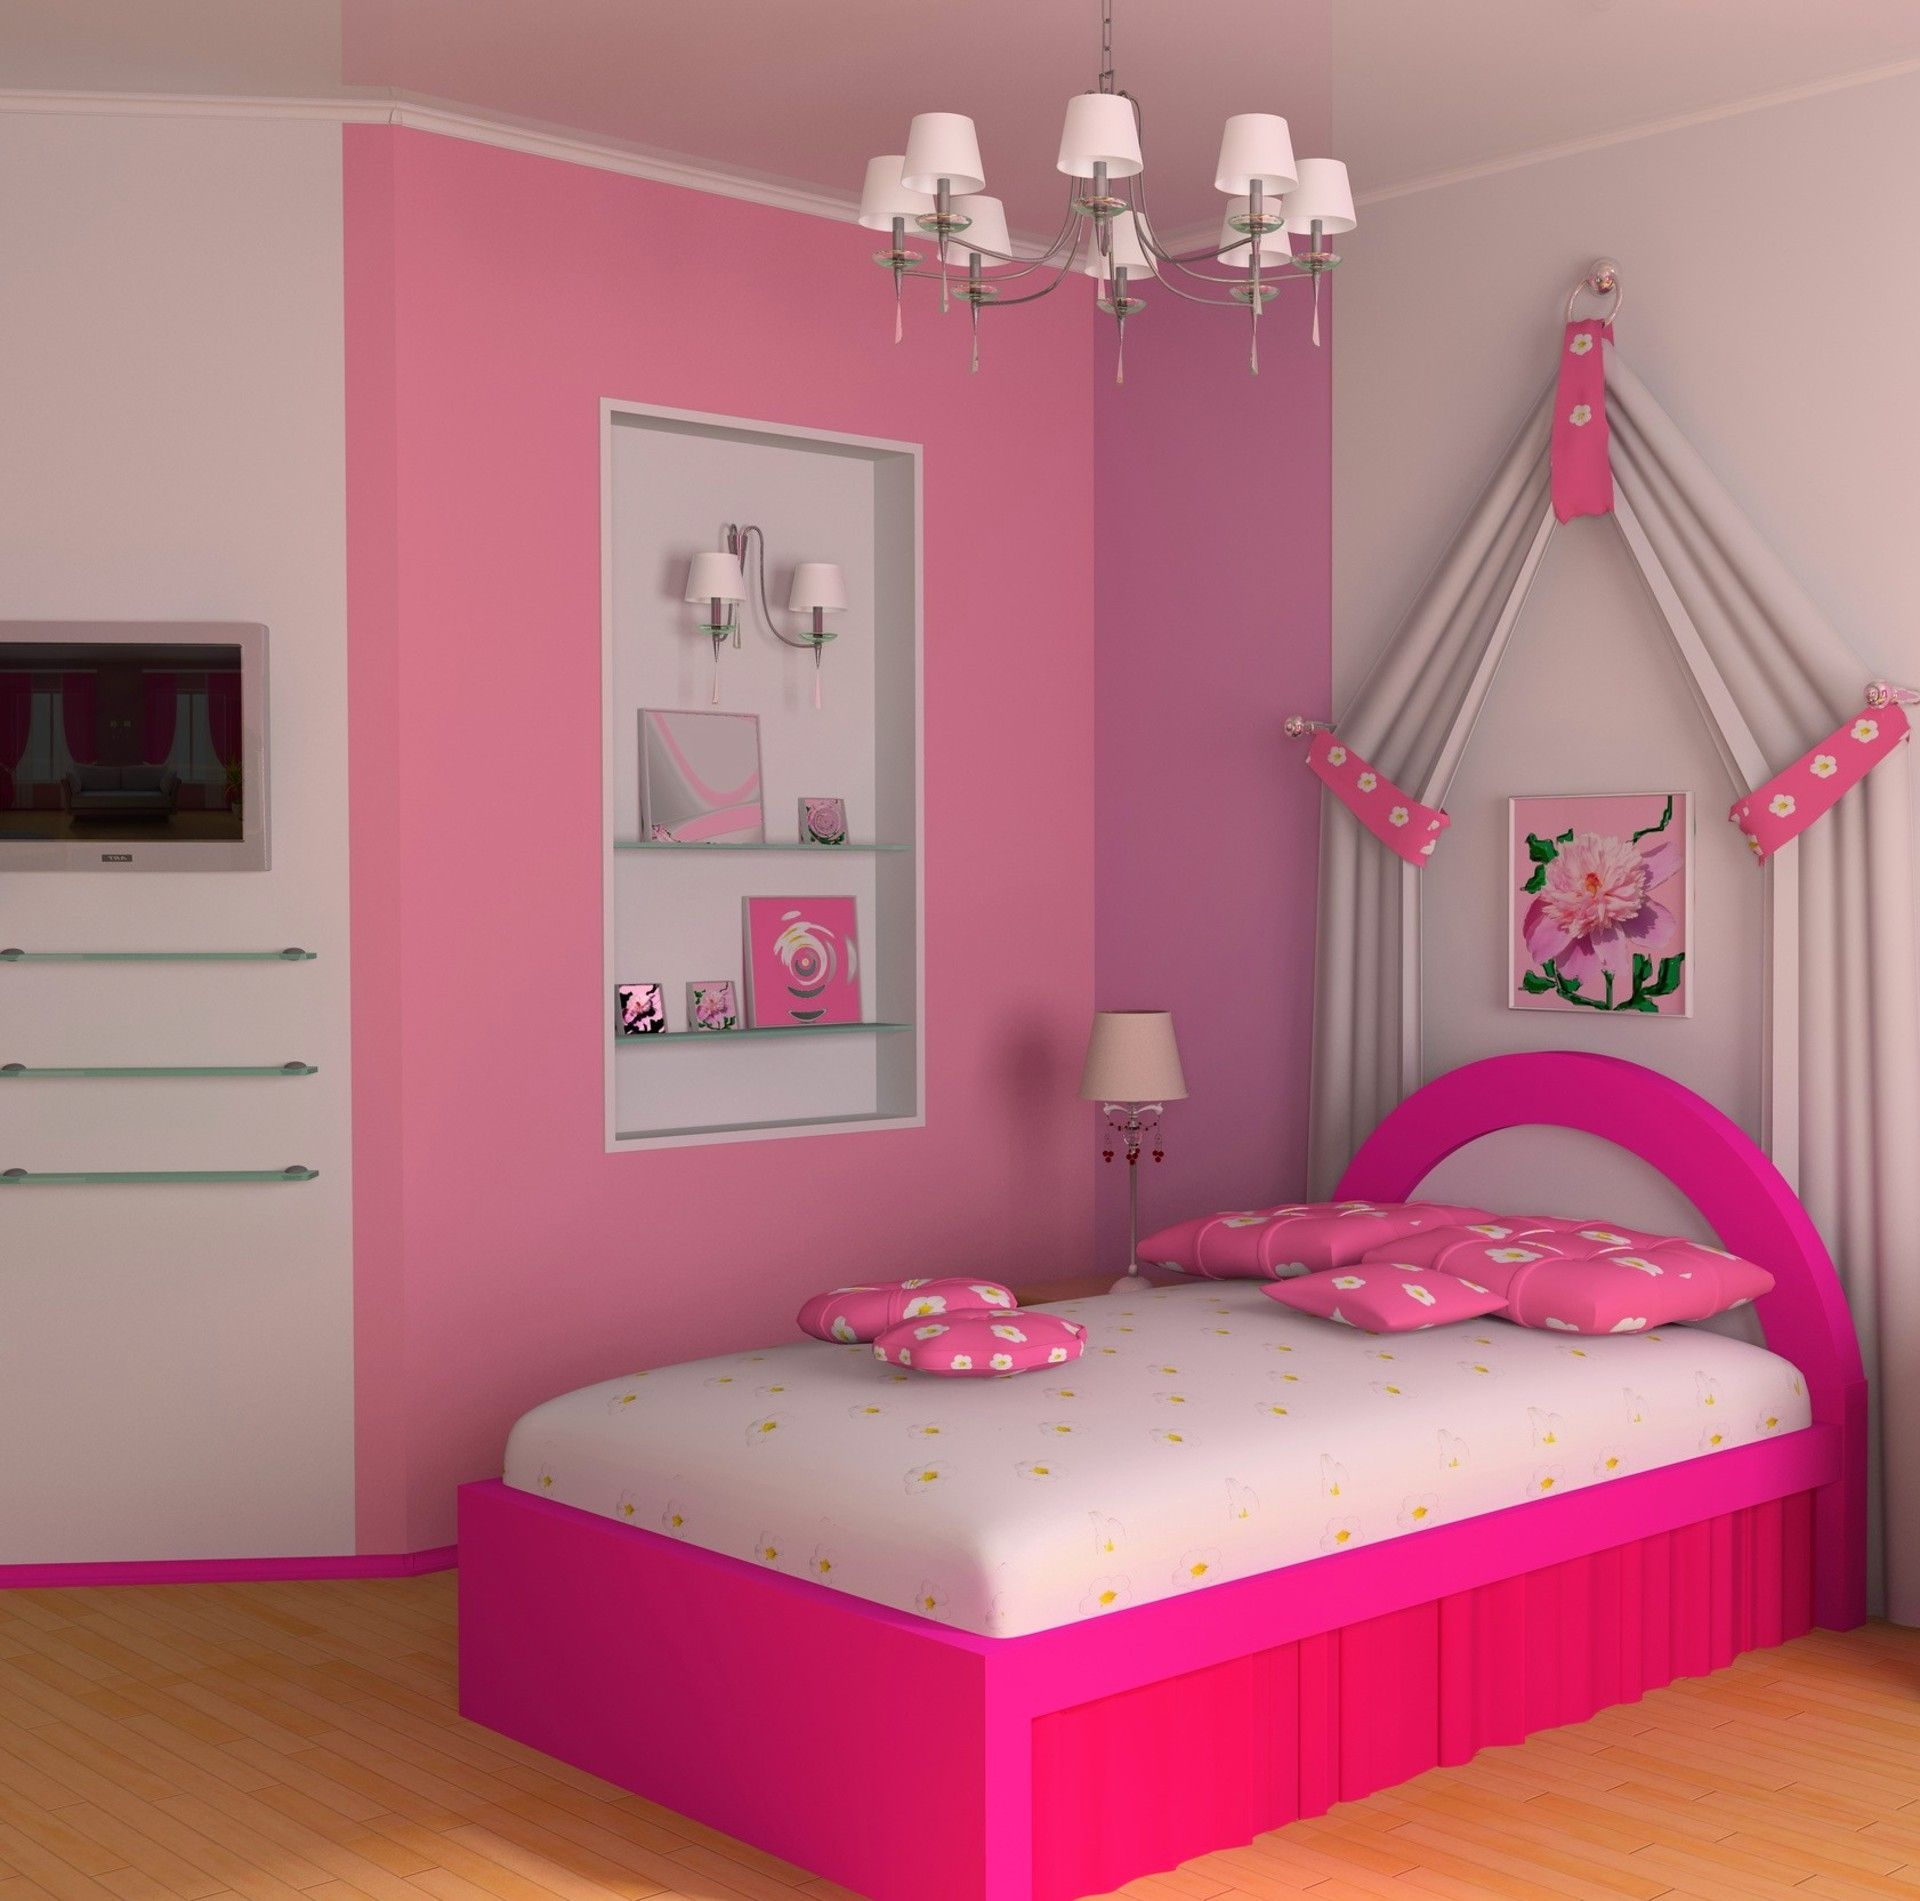 barbie bedroom design for girl bedroom schlafzimmer design on cute girls bedroom ideas for small rooms easy and fun decorating id=28790